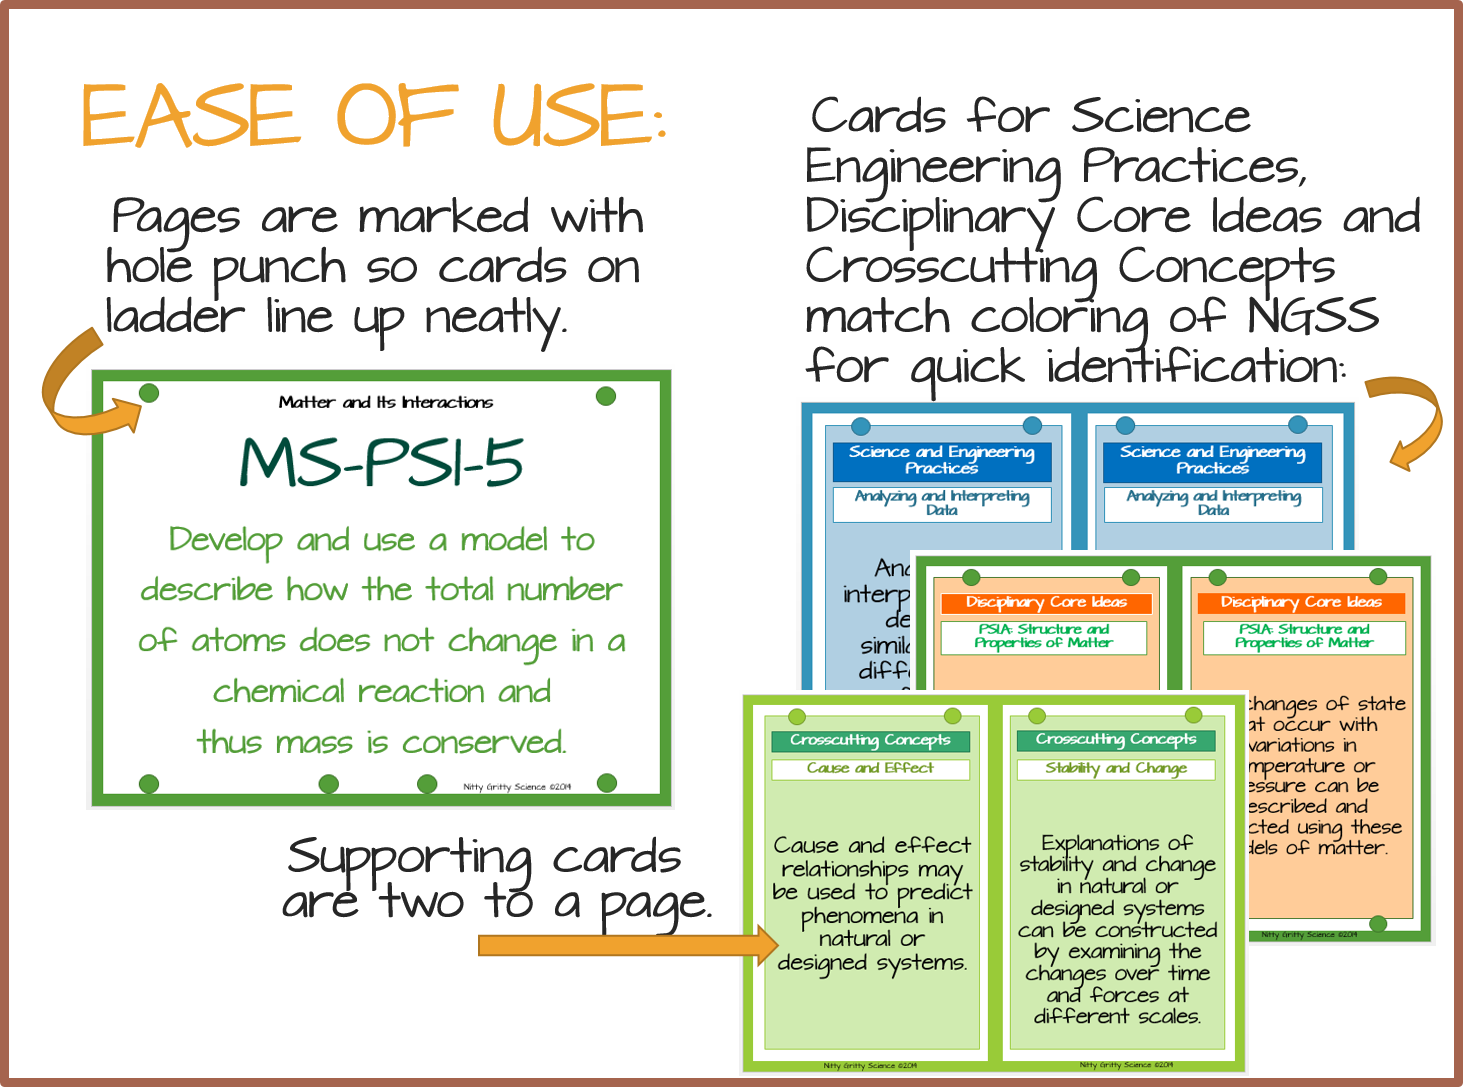 Nitty Gritty Science: NGSS Made Simple (and Manageable!)